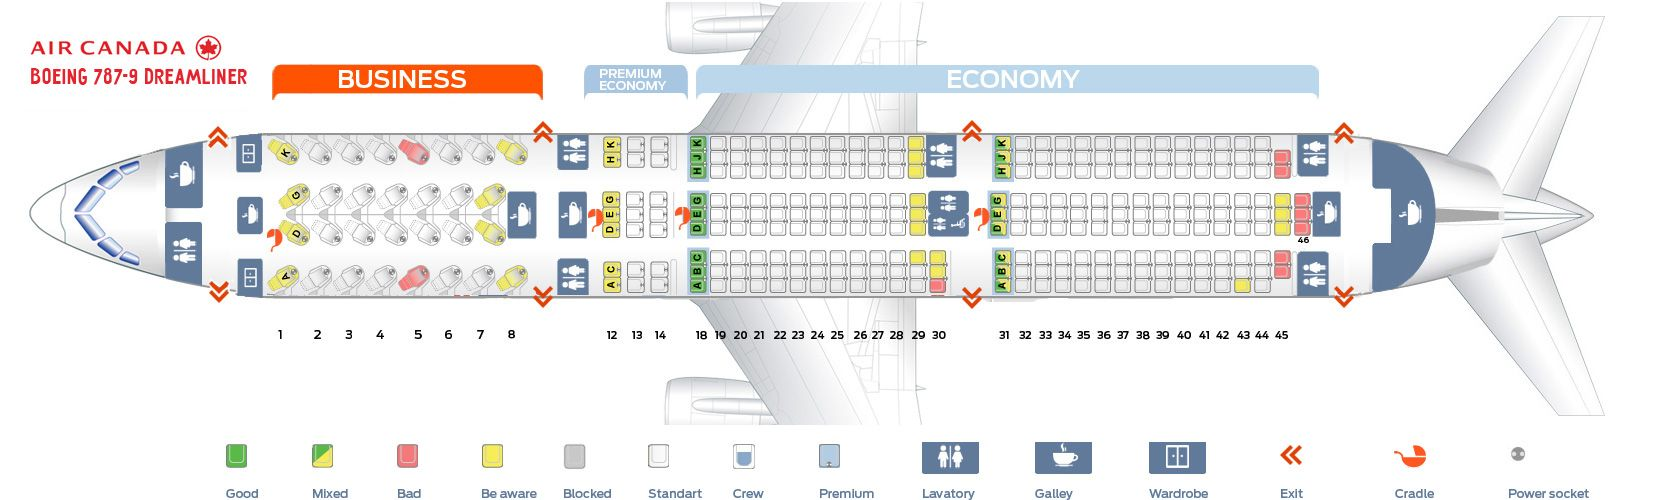 Seat Map And Seating Chart Boeing 787 9 Dreamliner Air Canada Boeing Alaska Airlines Boeing Dreamliner